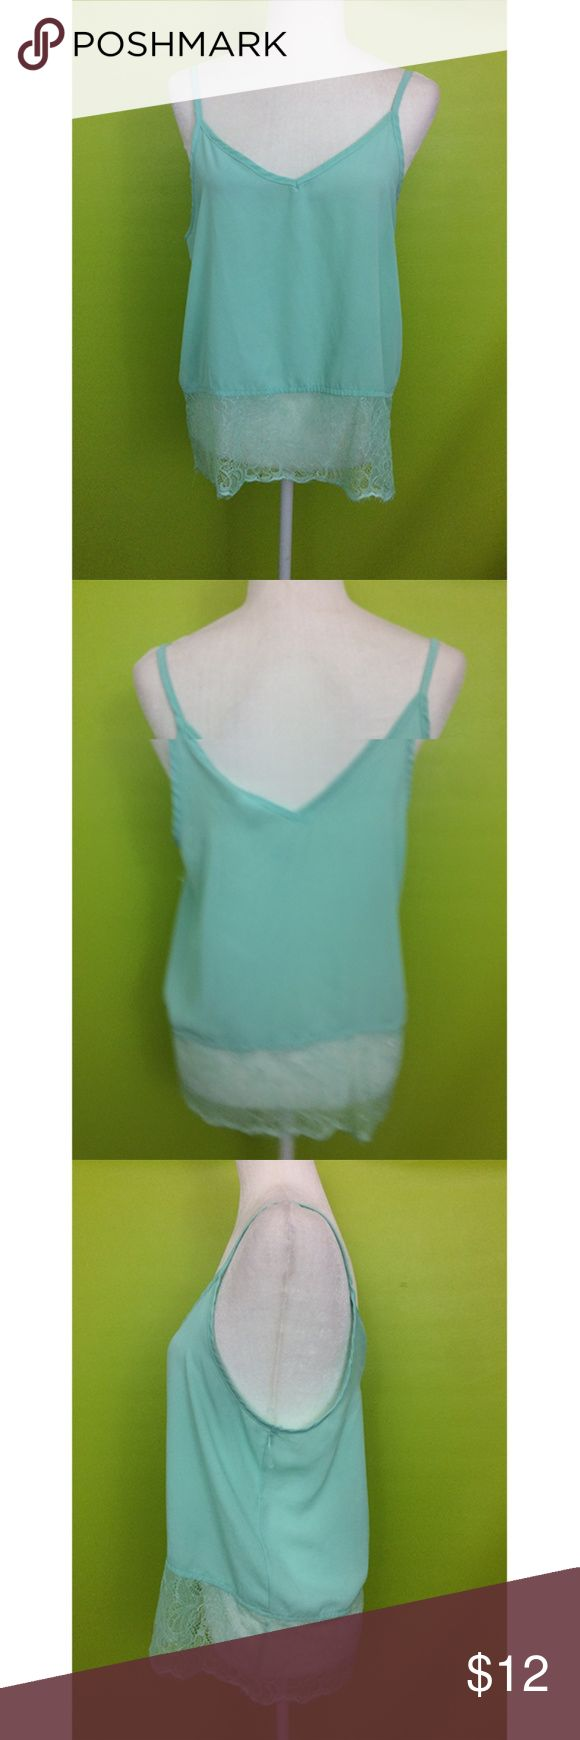 "Gracie Spaghetti Lace Hem Mint Cami Top M B291  Top  Bust - 40"" Length - 24""  Gracie Spaghetti Sleeves Wide V Neck  Laced Hem Mint Green Cami Top Size Medium  Free shipping on orders over $75 Tops Camisoles"